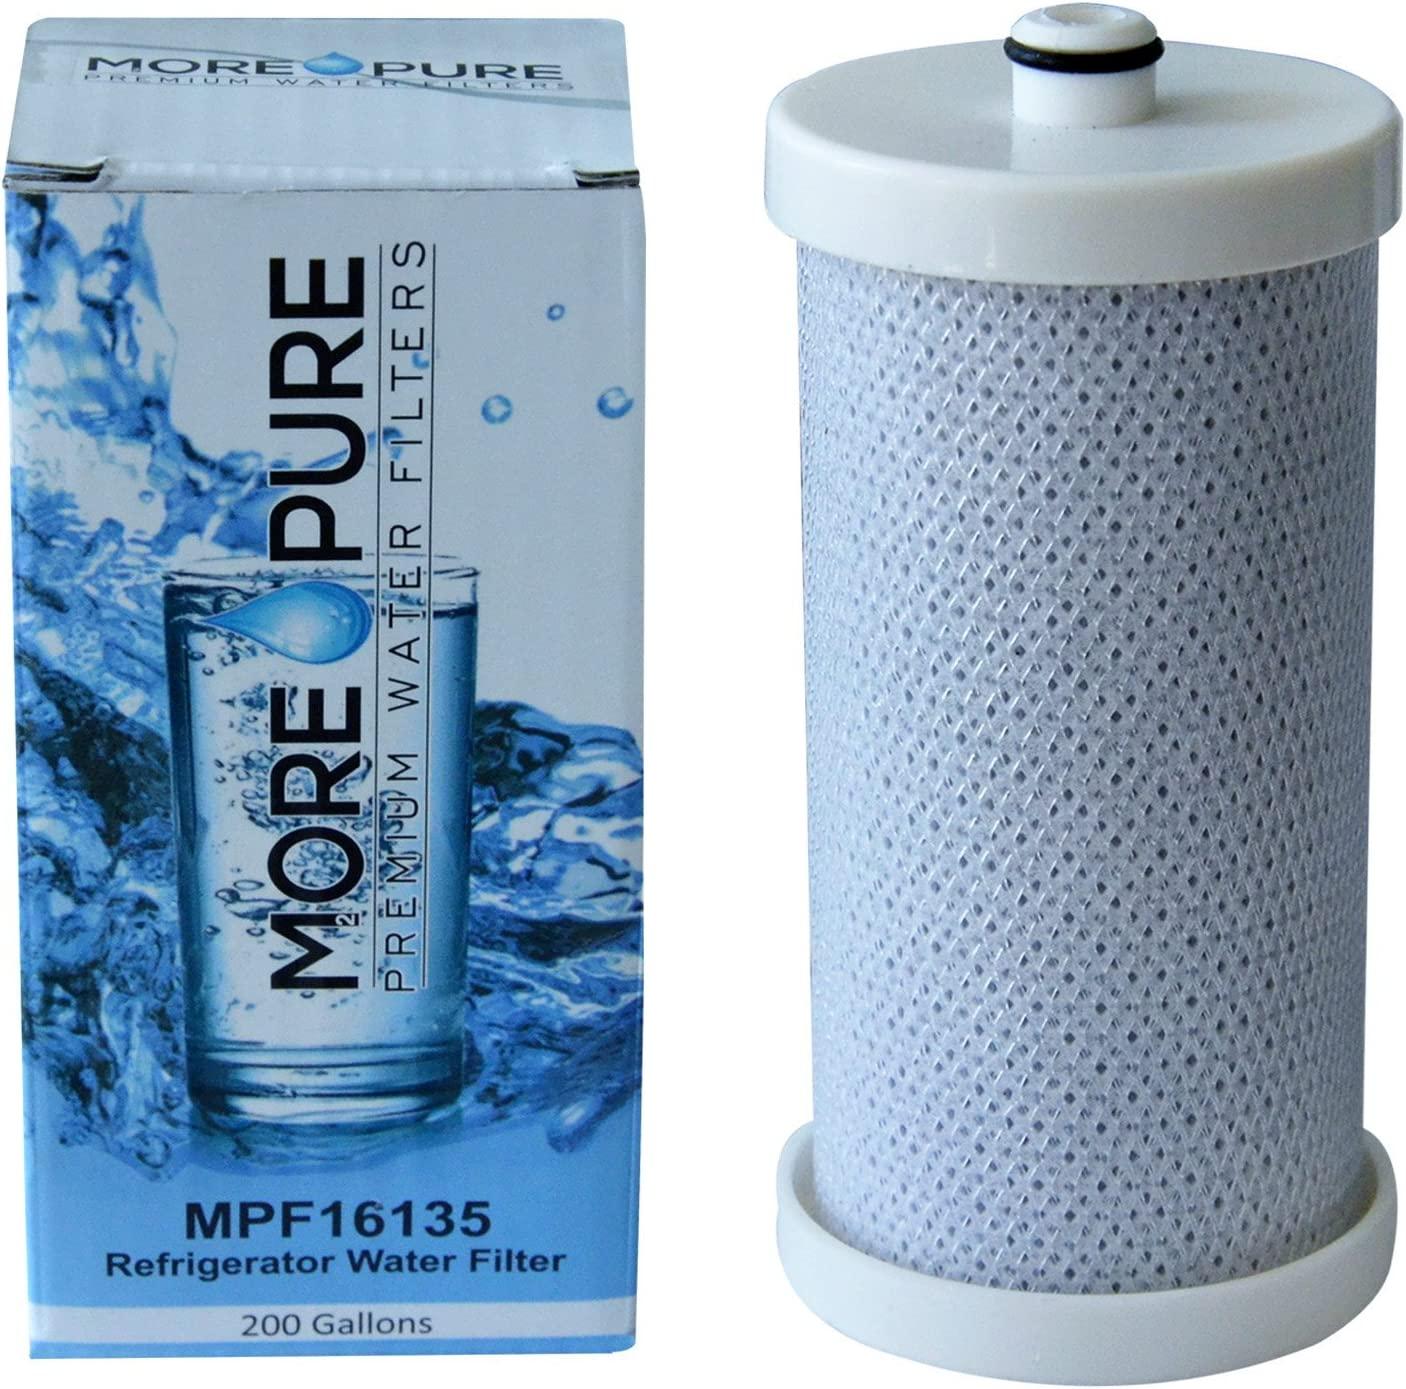 MORE Pure MPF16135 Replacement Compati Wholesale Water Mail order Filter Refrigerator